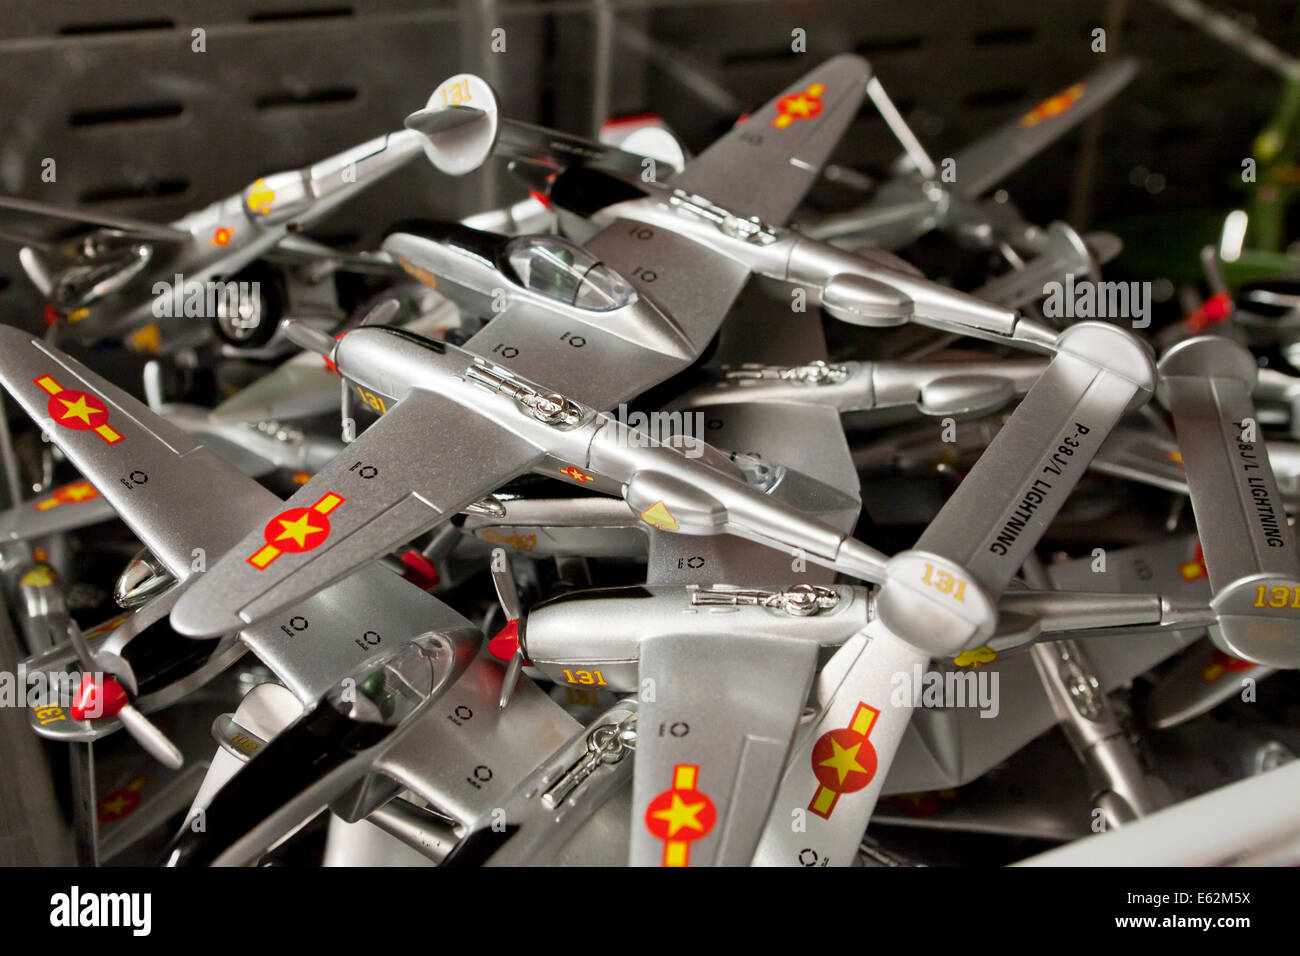 Toy model planes at toy store - USA - Stock Image